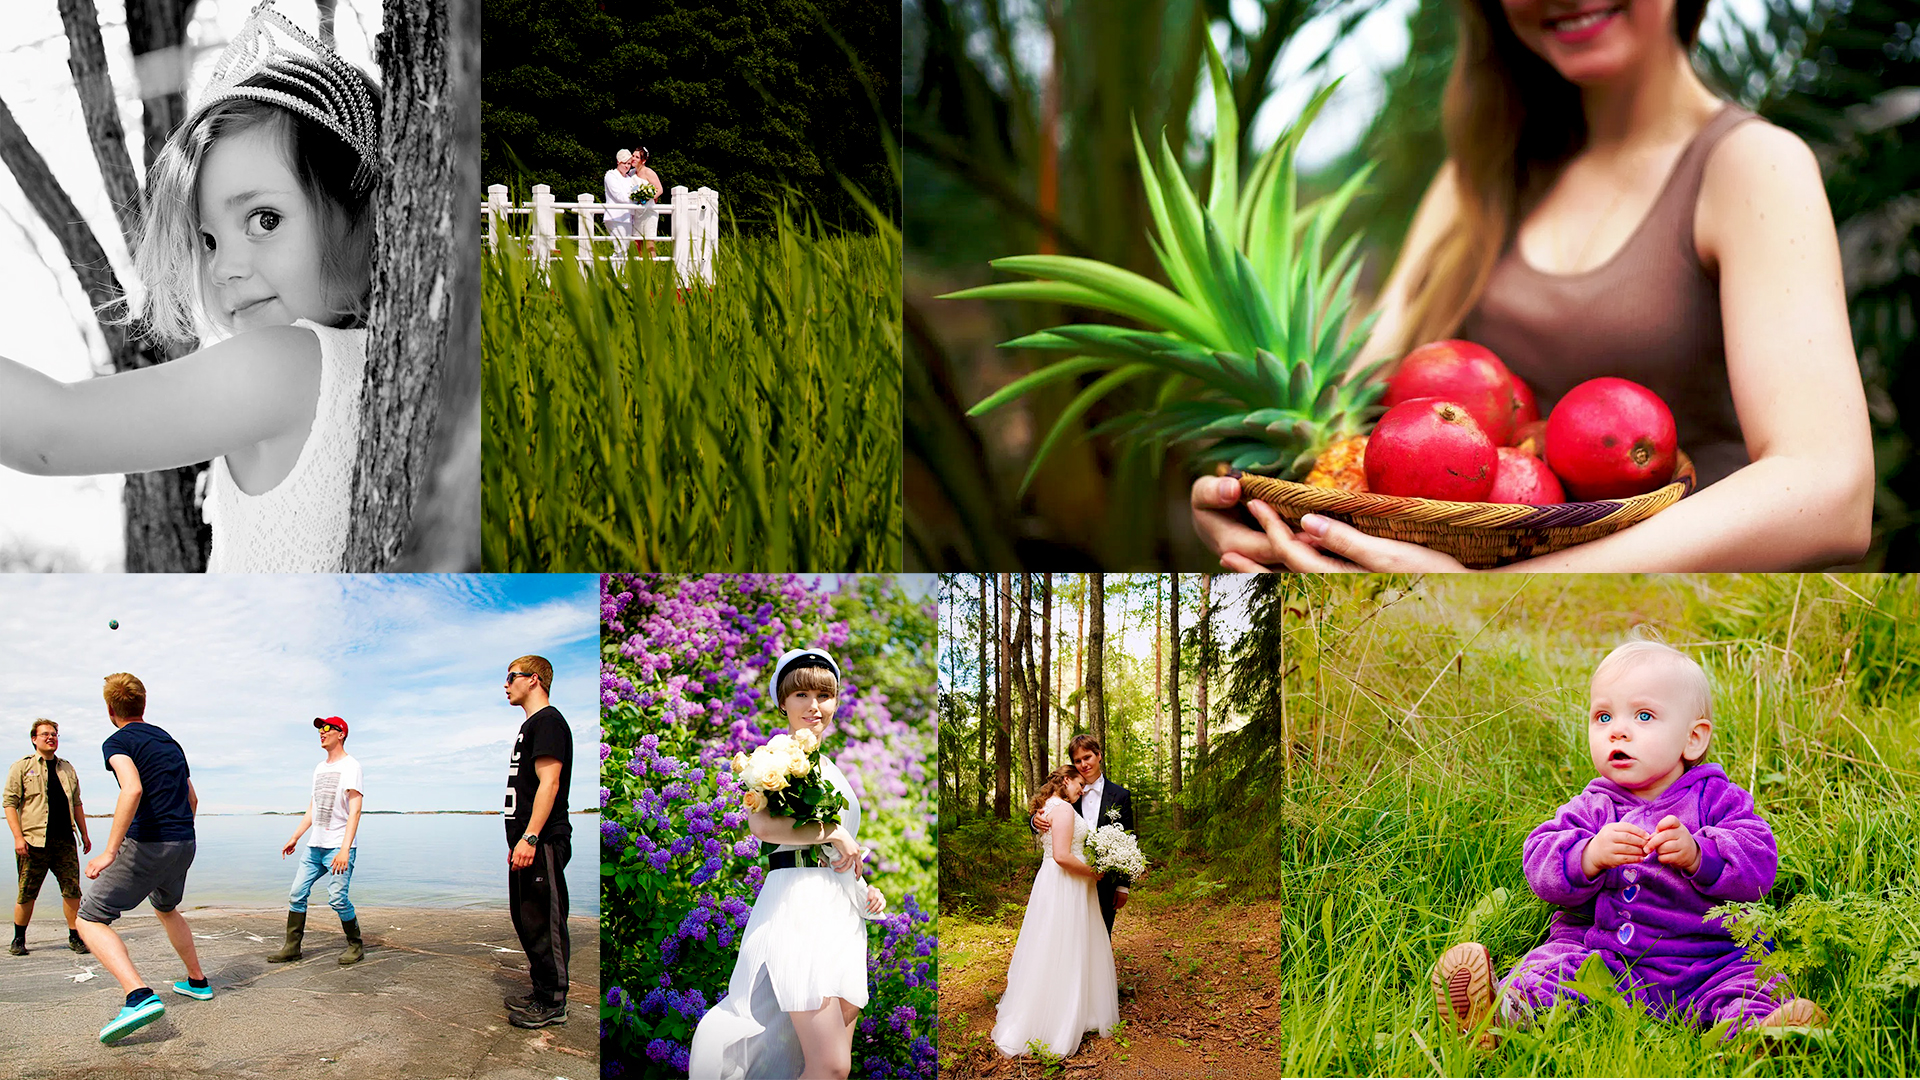 Location Portraits Photography Tips For Beginner